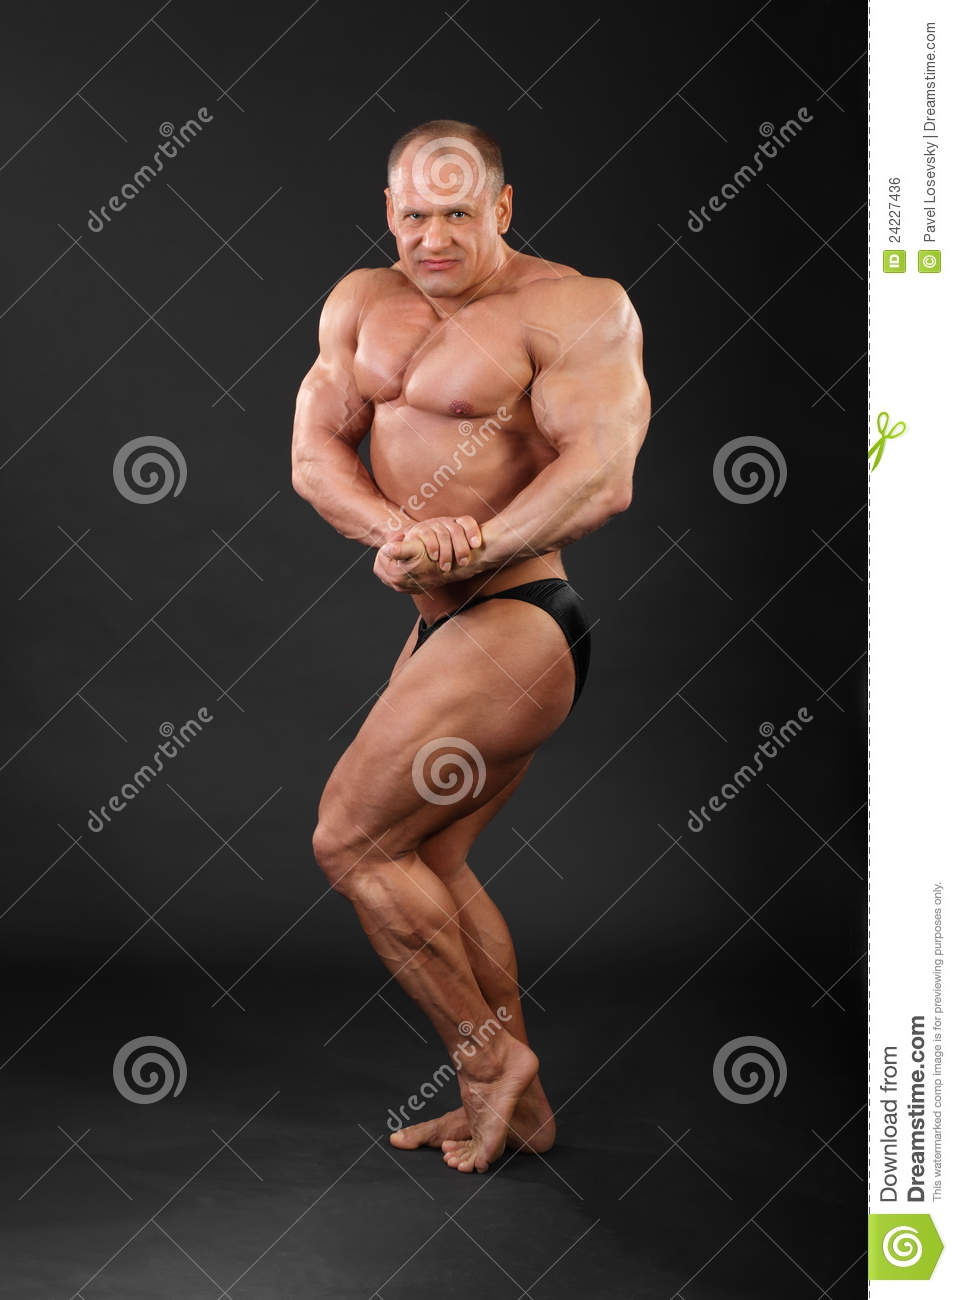 Bodybuilder Demonstrates Arms Legs Muscles Body Builders Pics With White